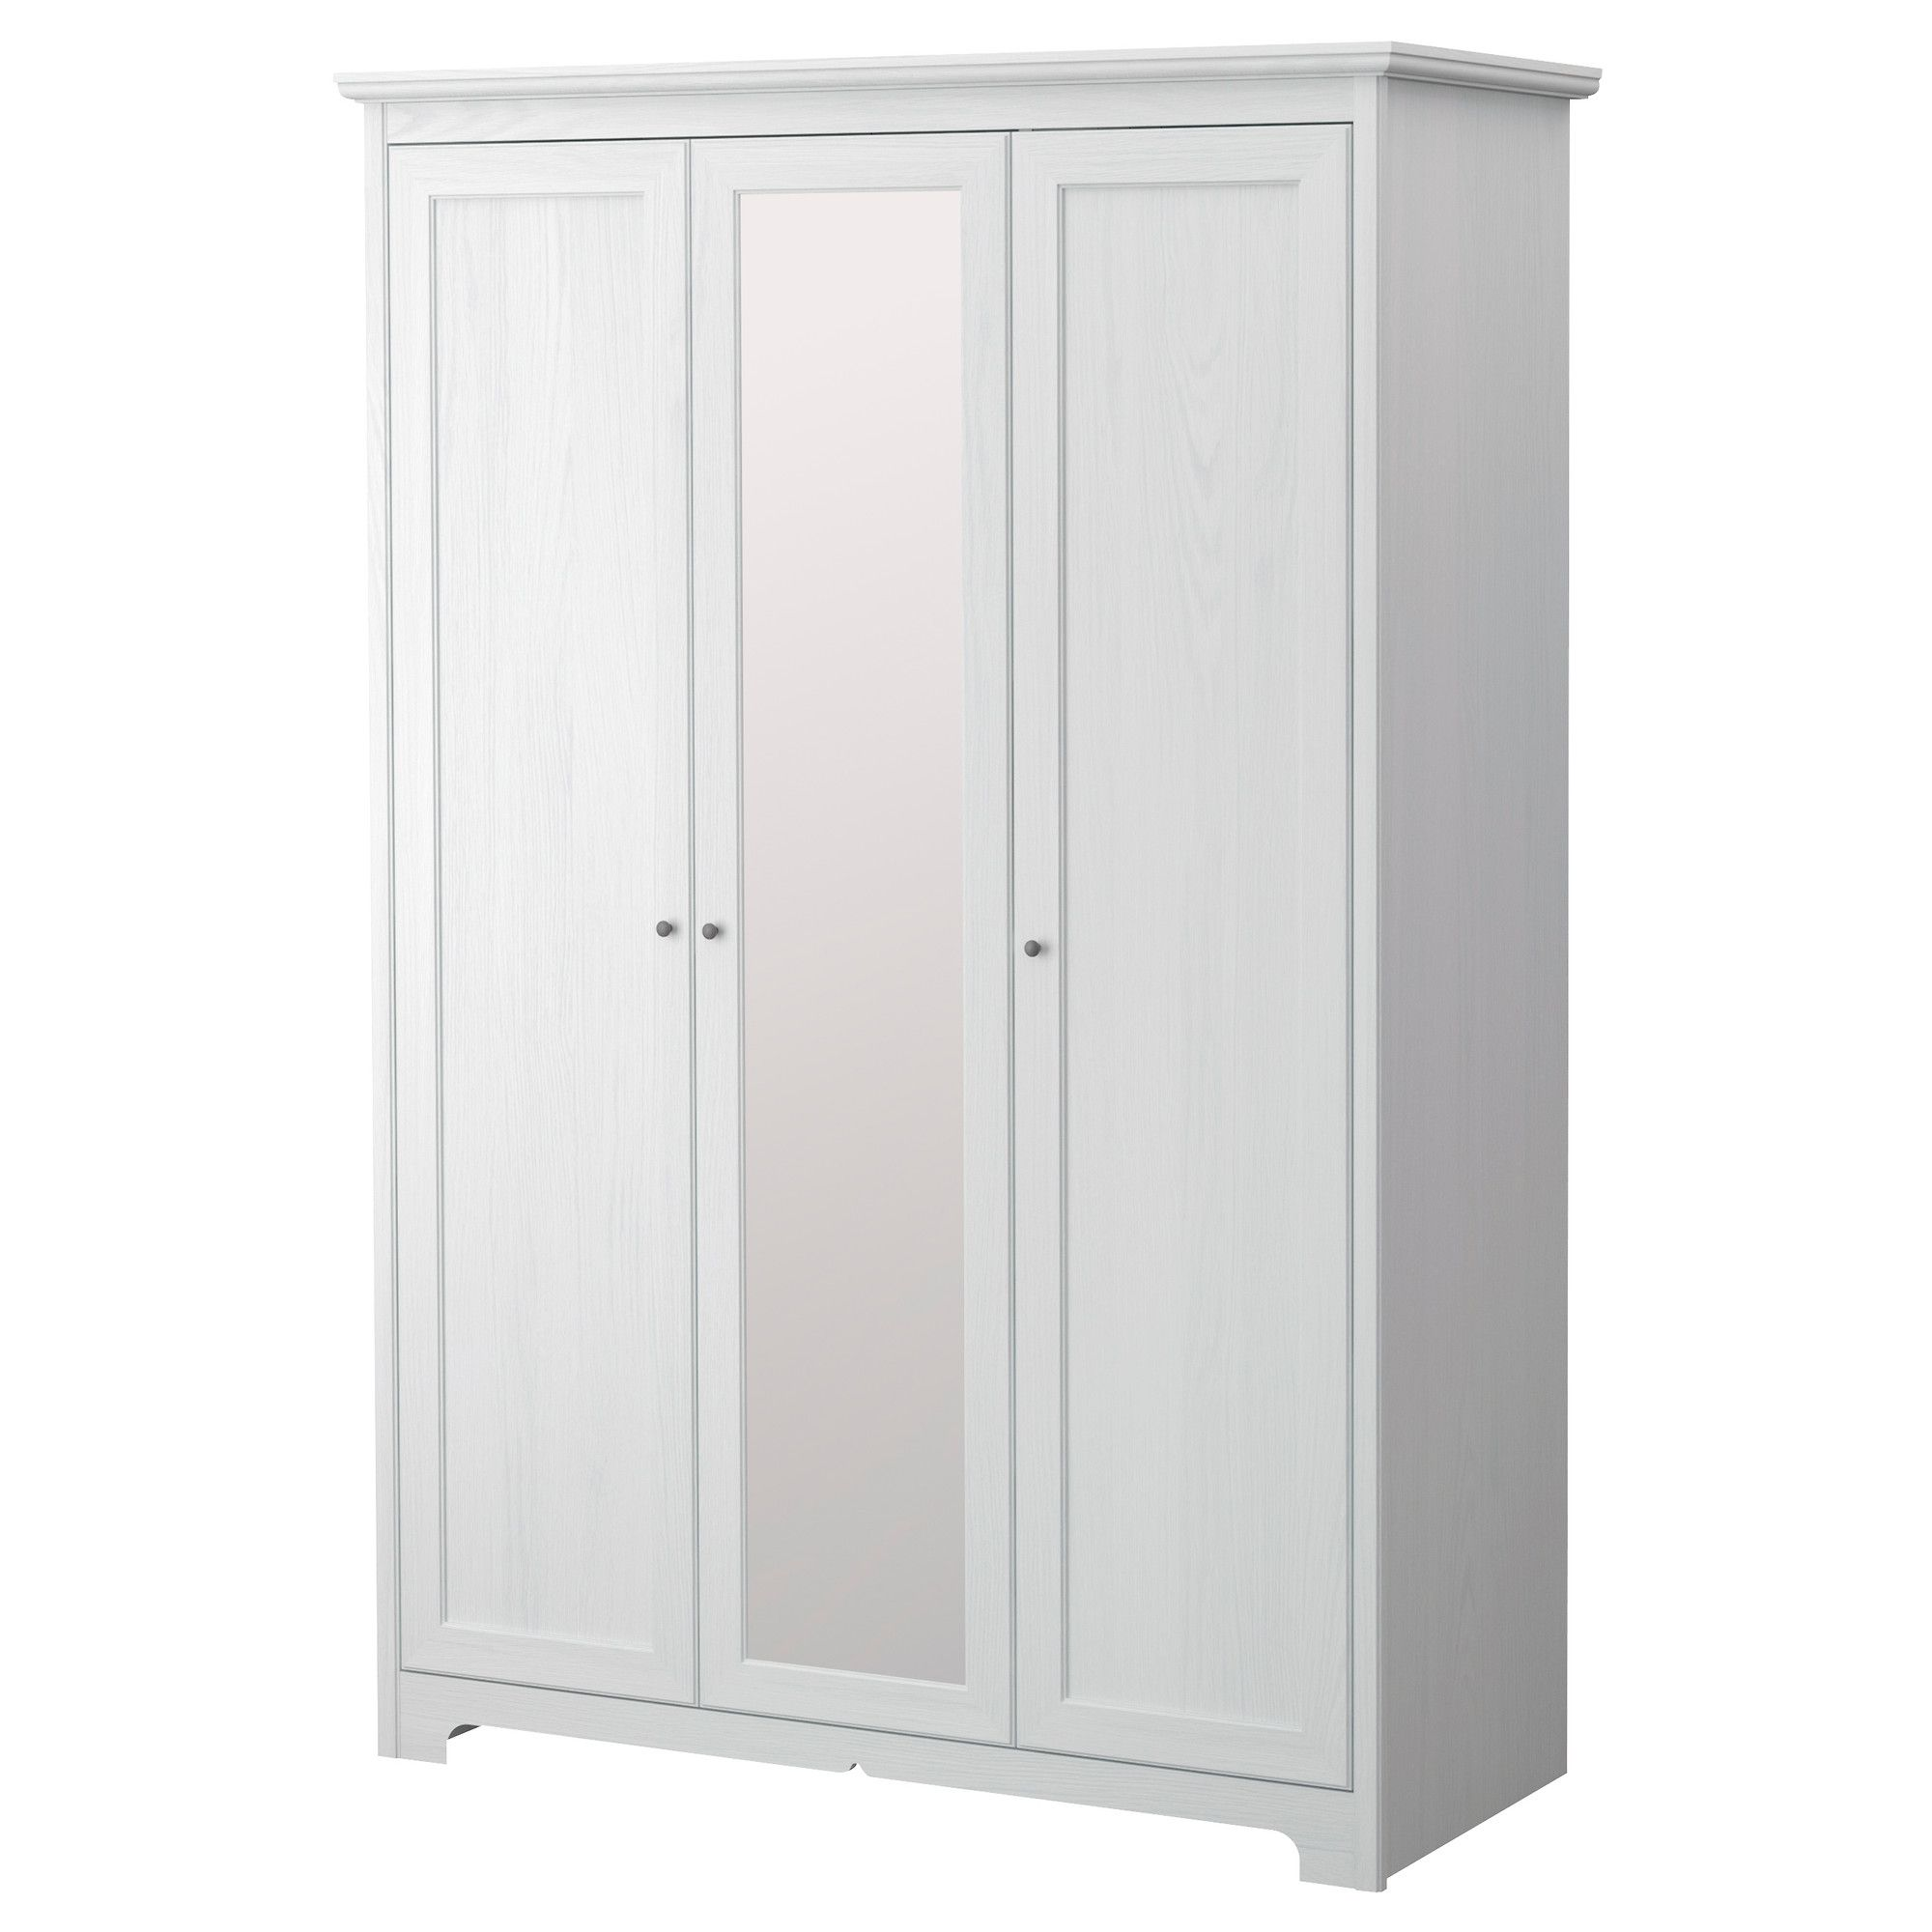 Le Meilleur Aspelund Wardrobe With 3 Doors Ikea Would Replace Knobs Ce Mois Ci